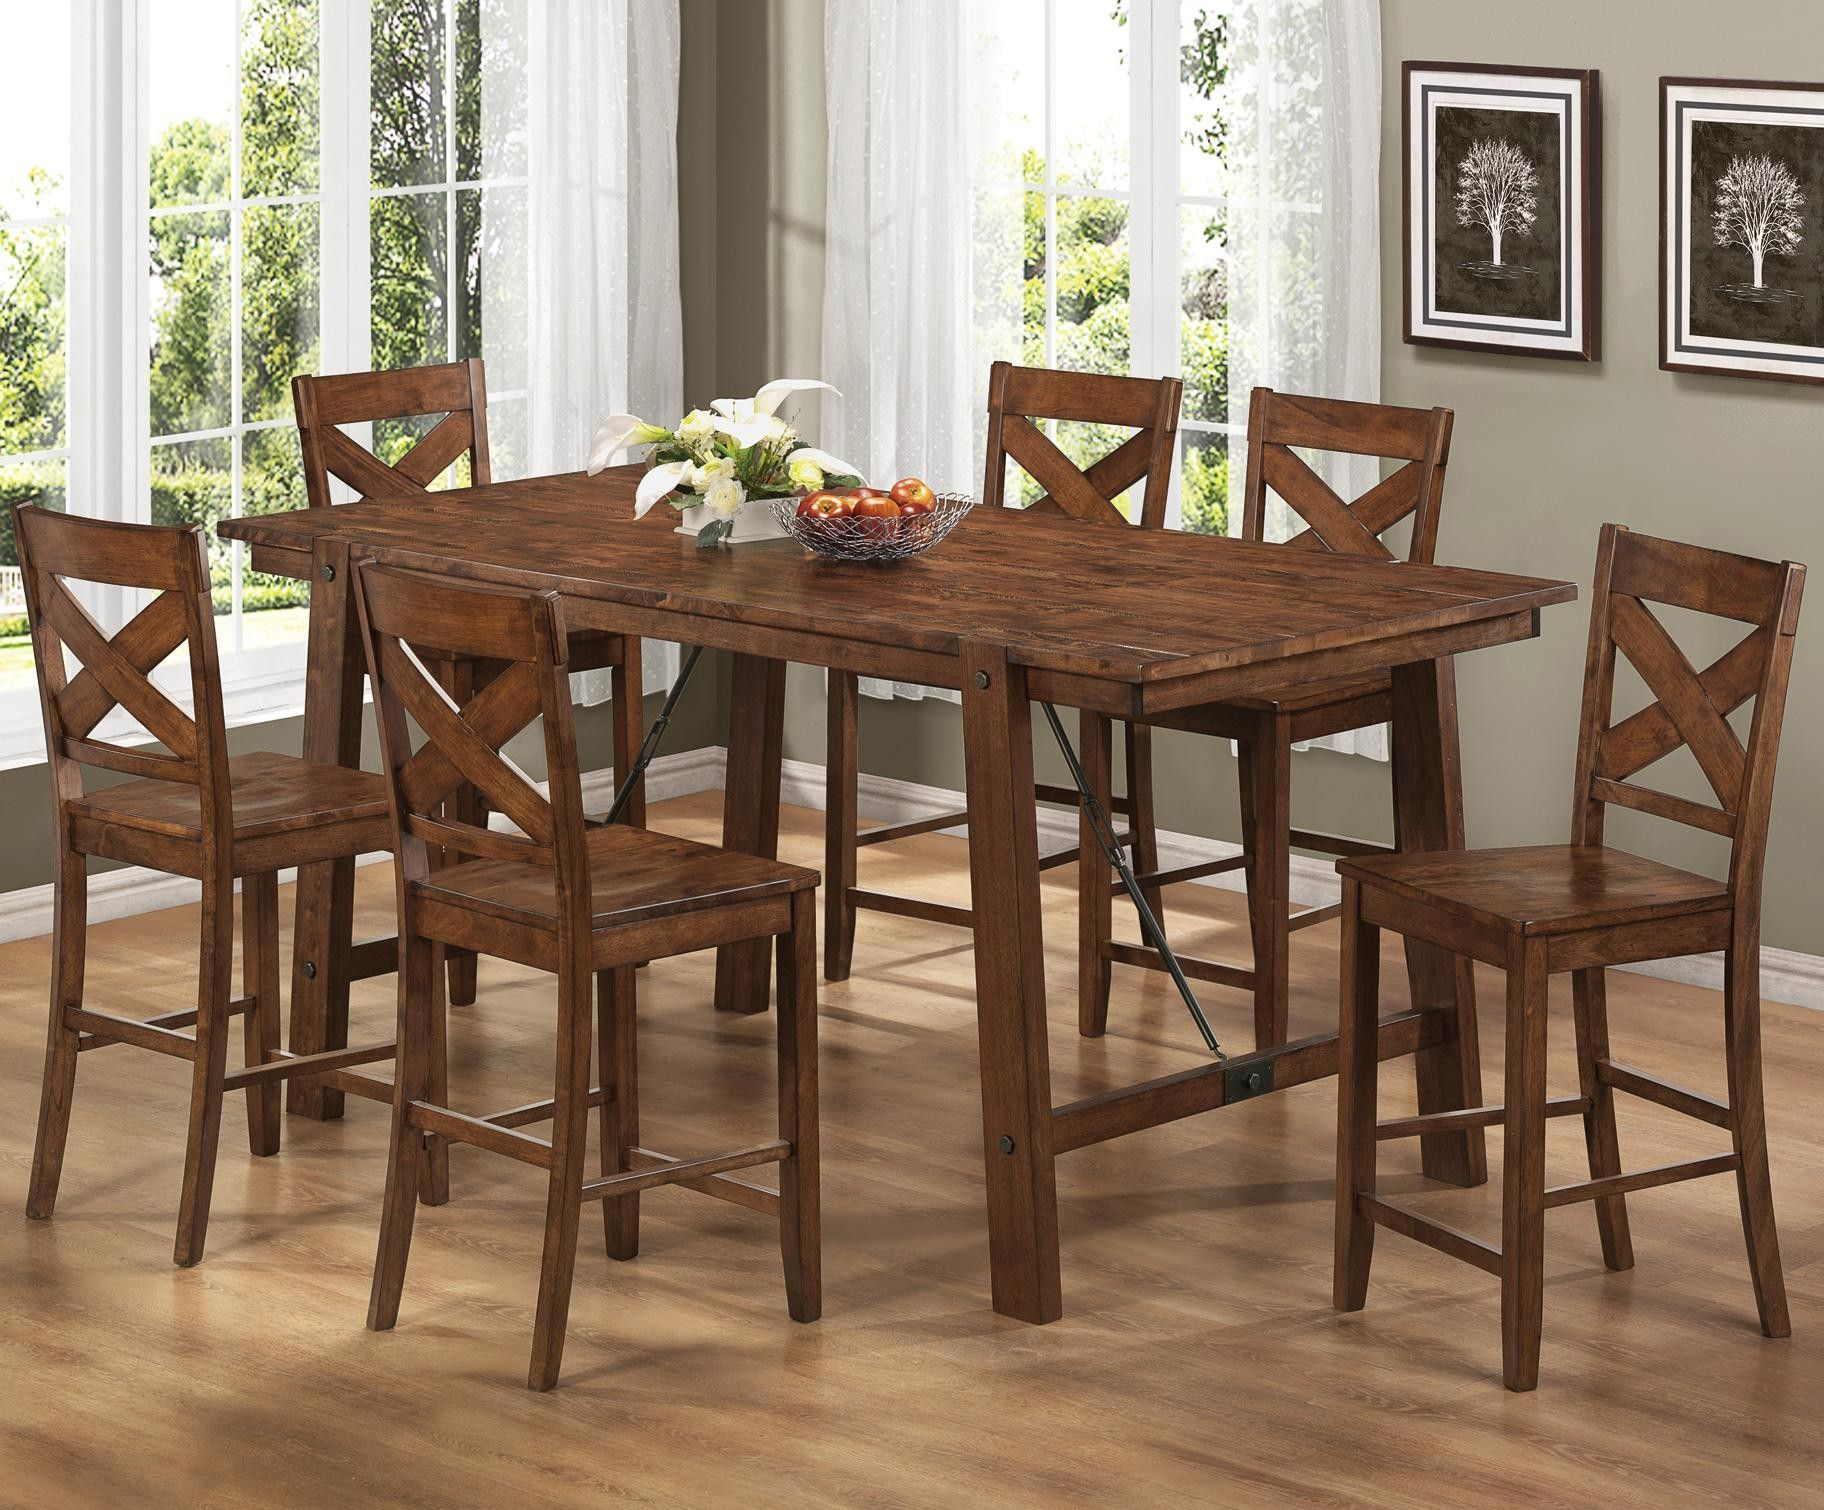 High Top Kitchen Table Sets   Dining furniture makeover ...